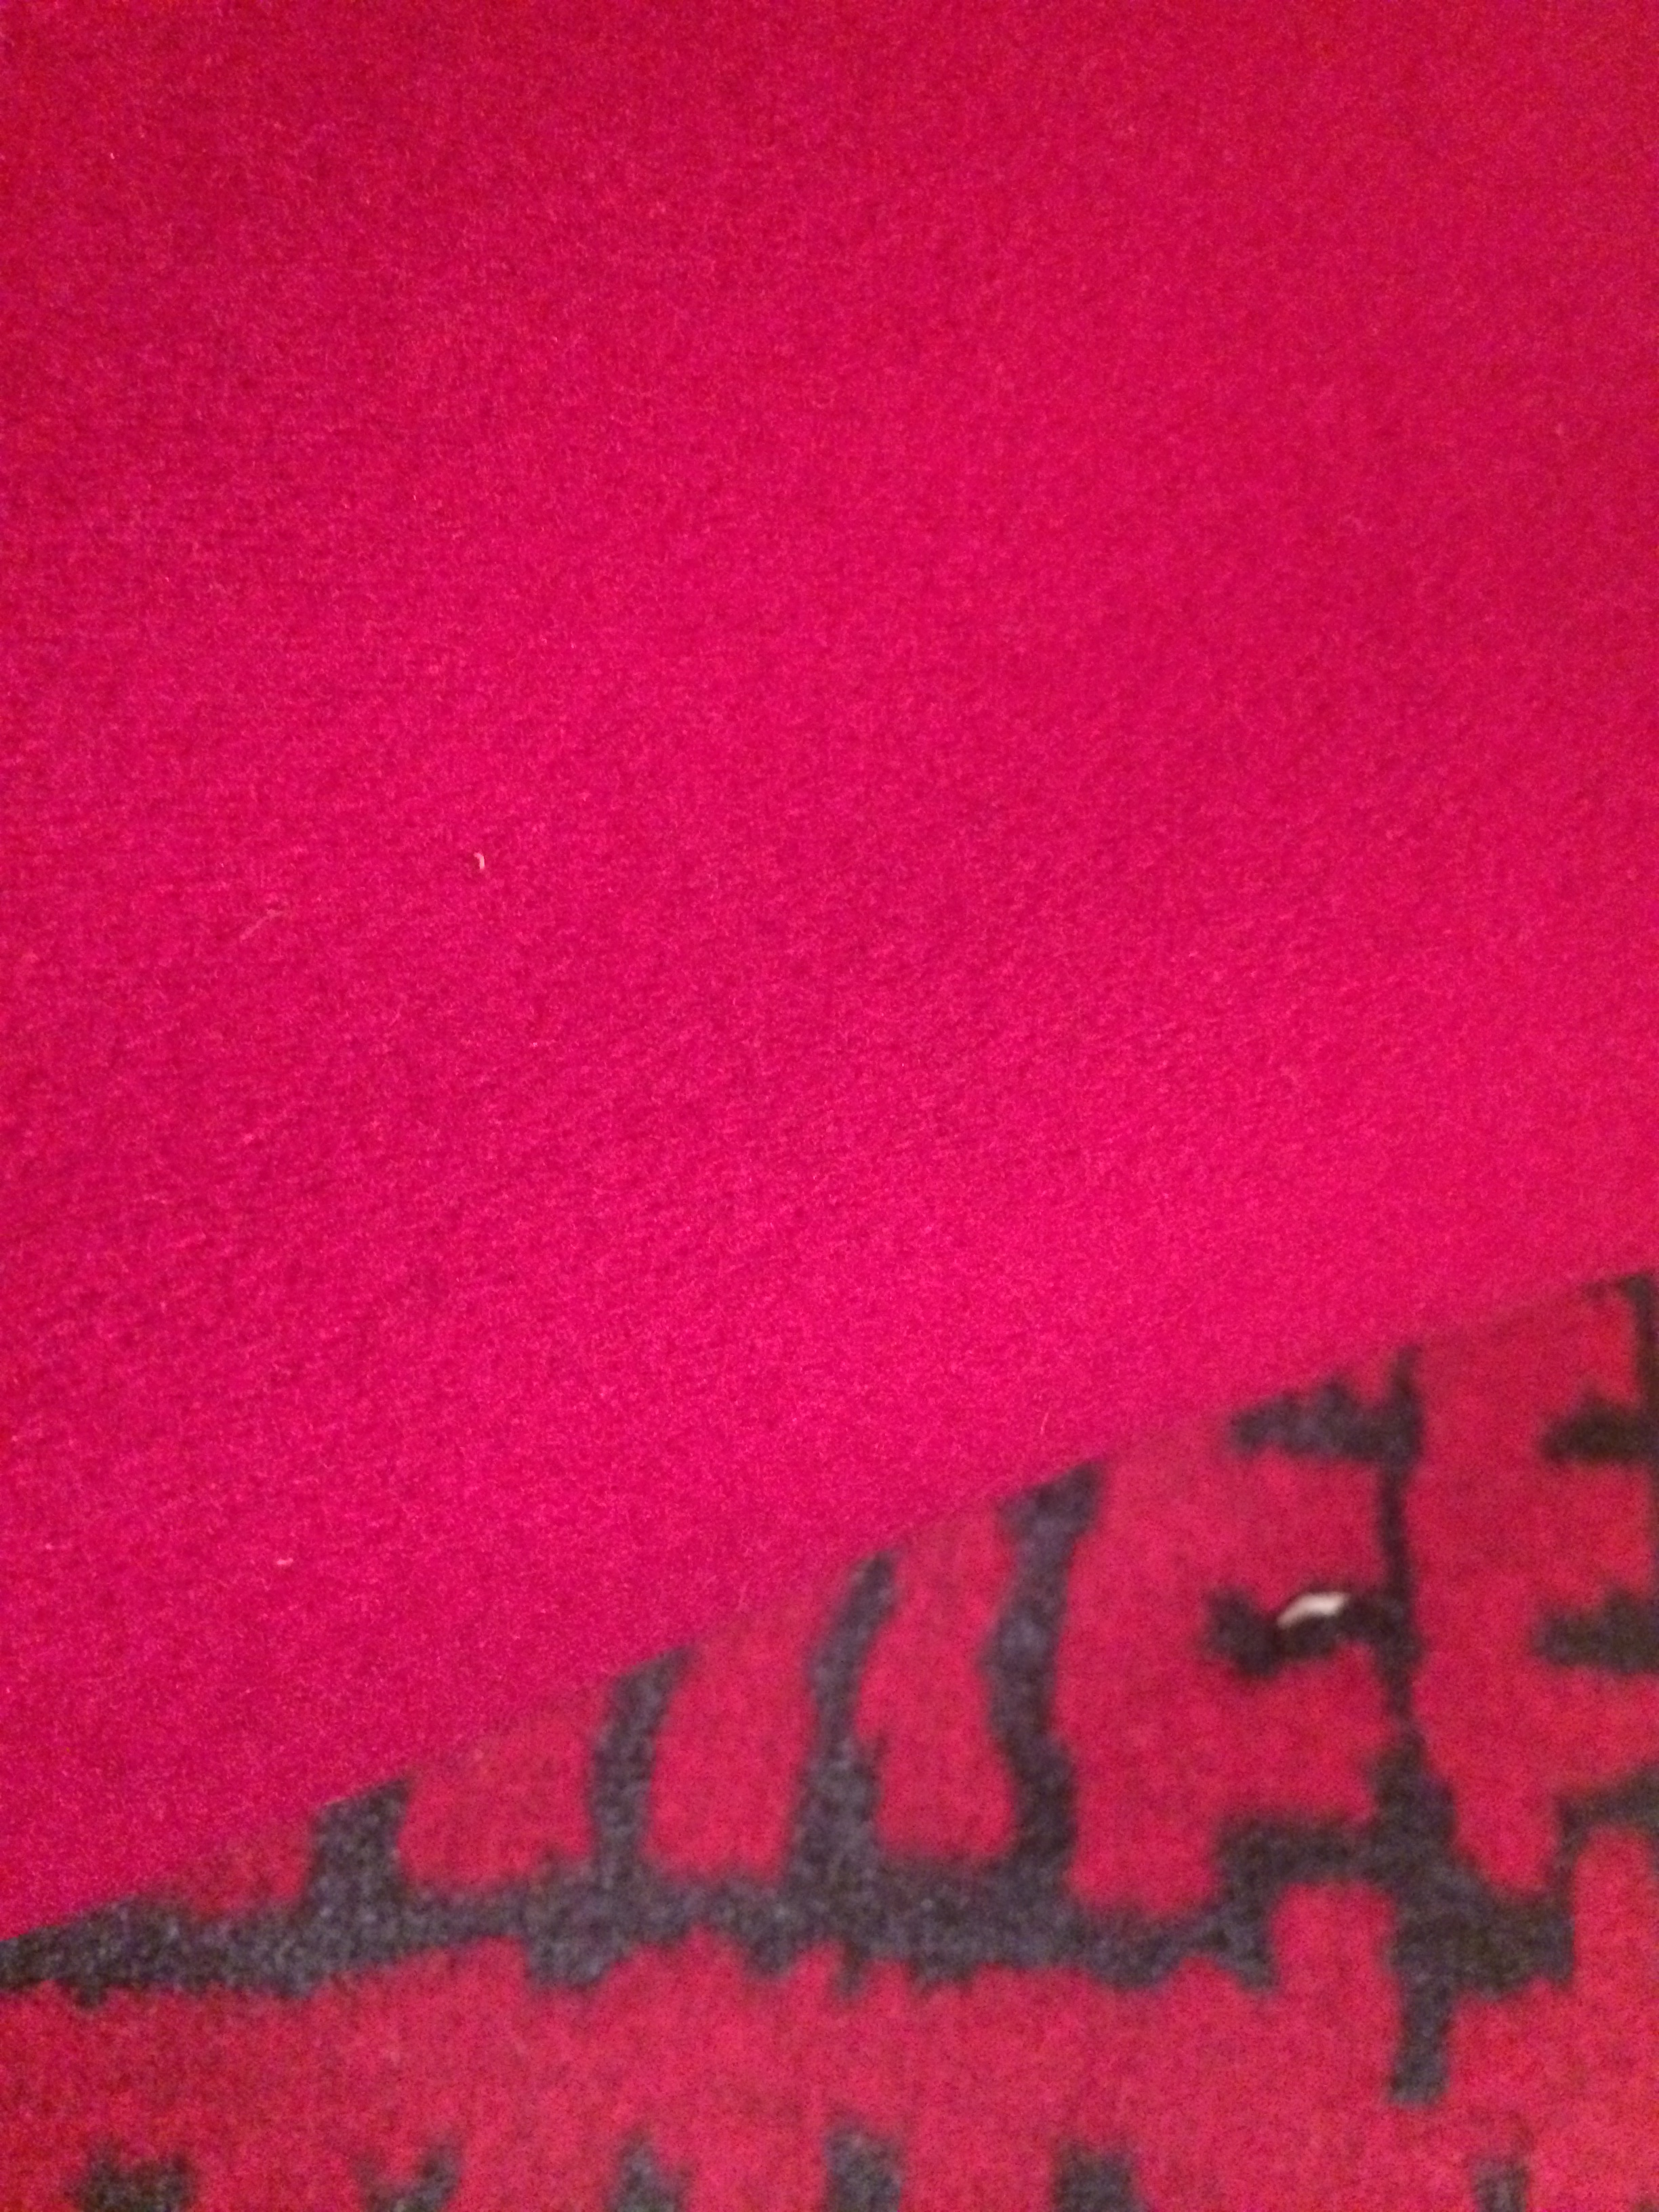 Fuchsia cloth (with Squiggle)